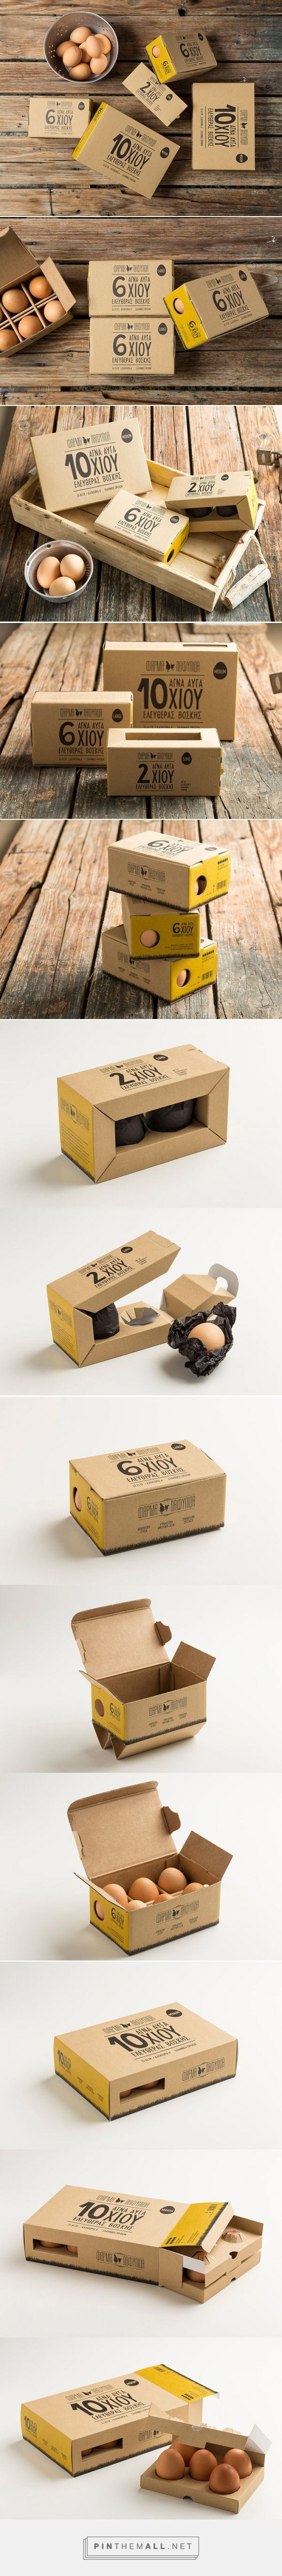 Pafylida Farm Range eggs by Maria Romanidou. Pin curated by #SFields99 #packaging #design